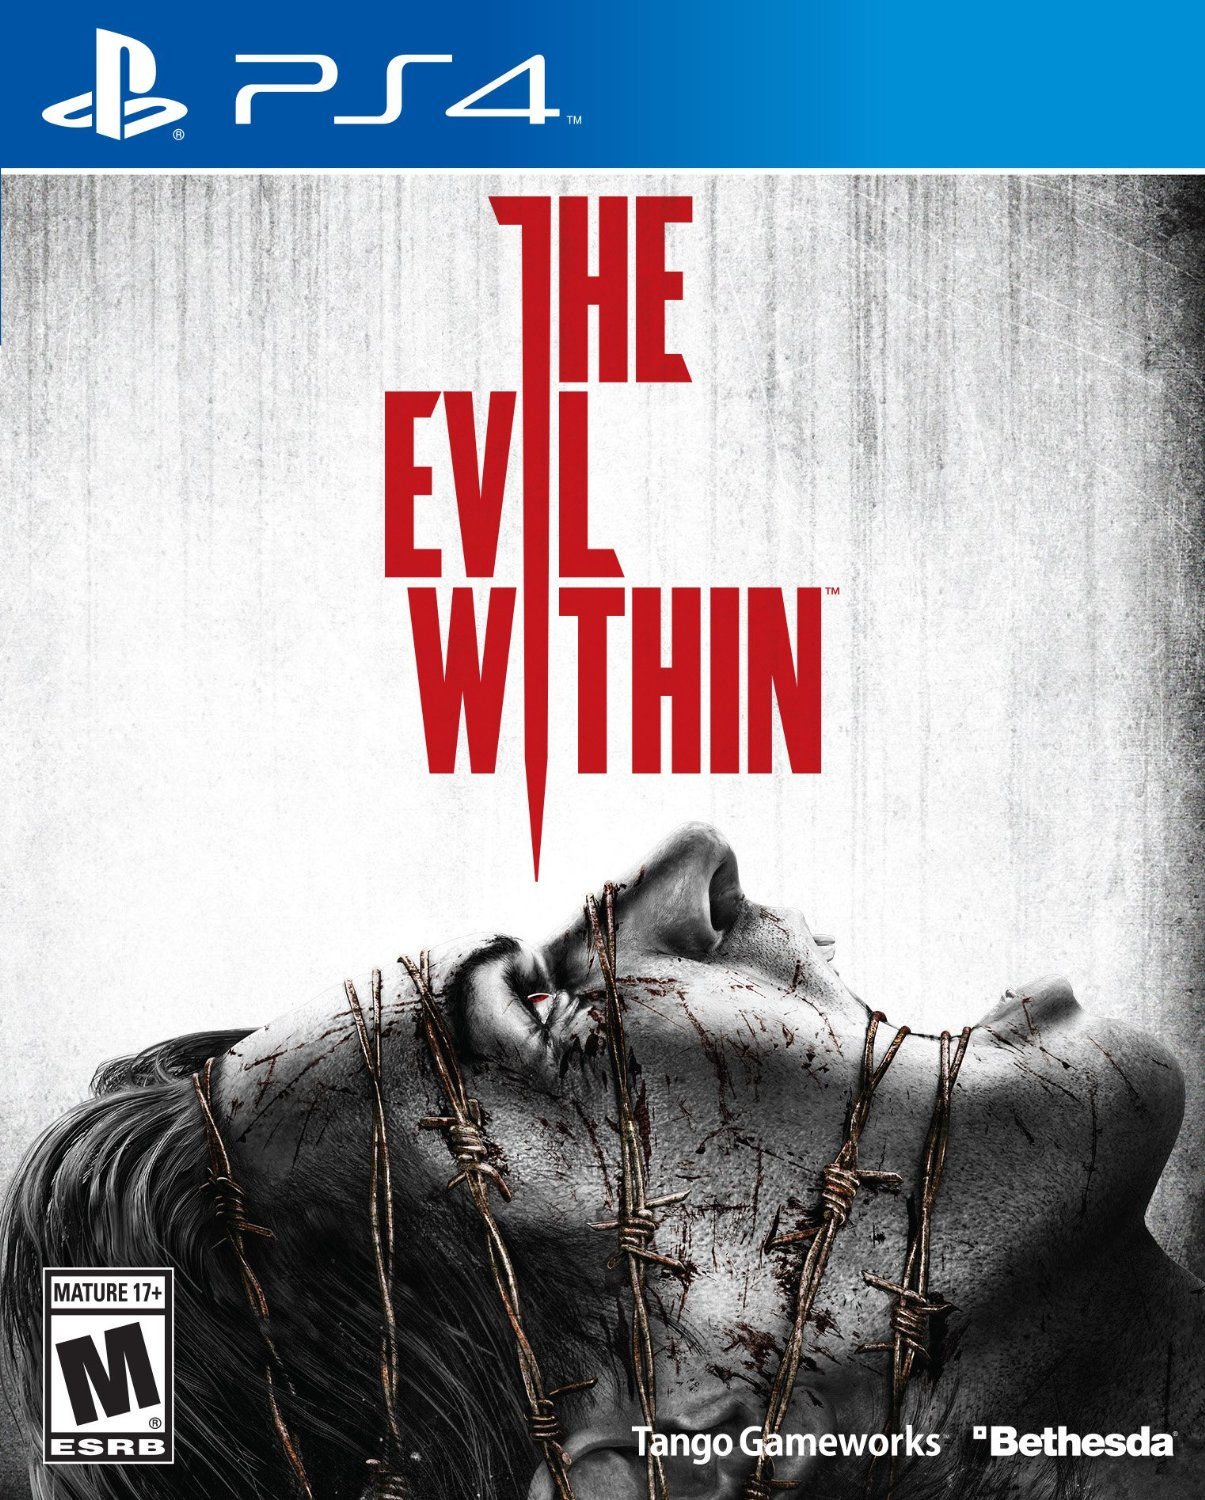 The Evil Within (PS4) review 6